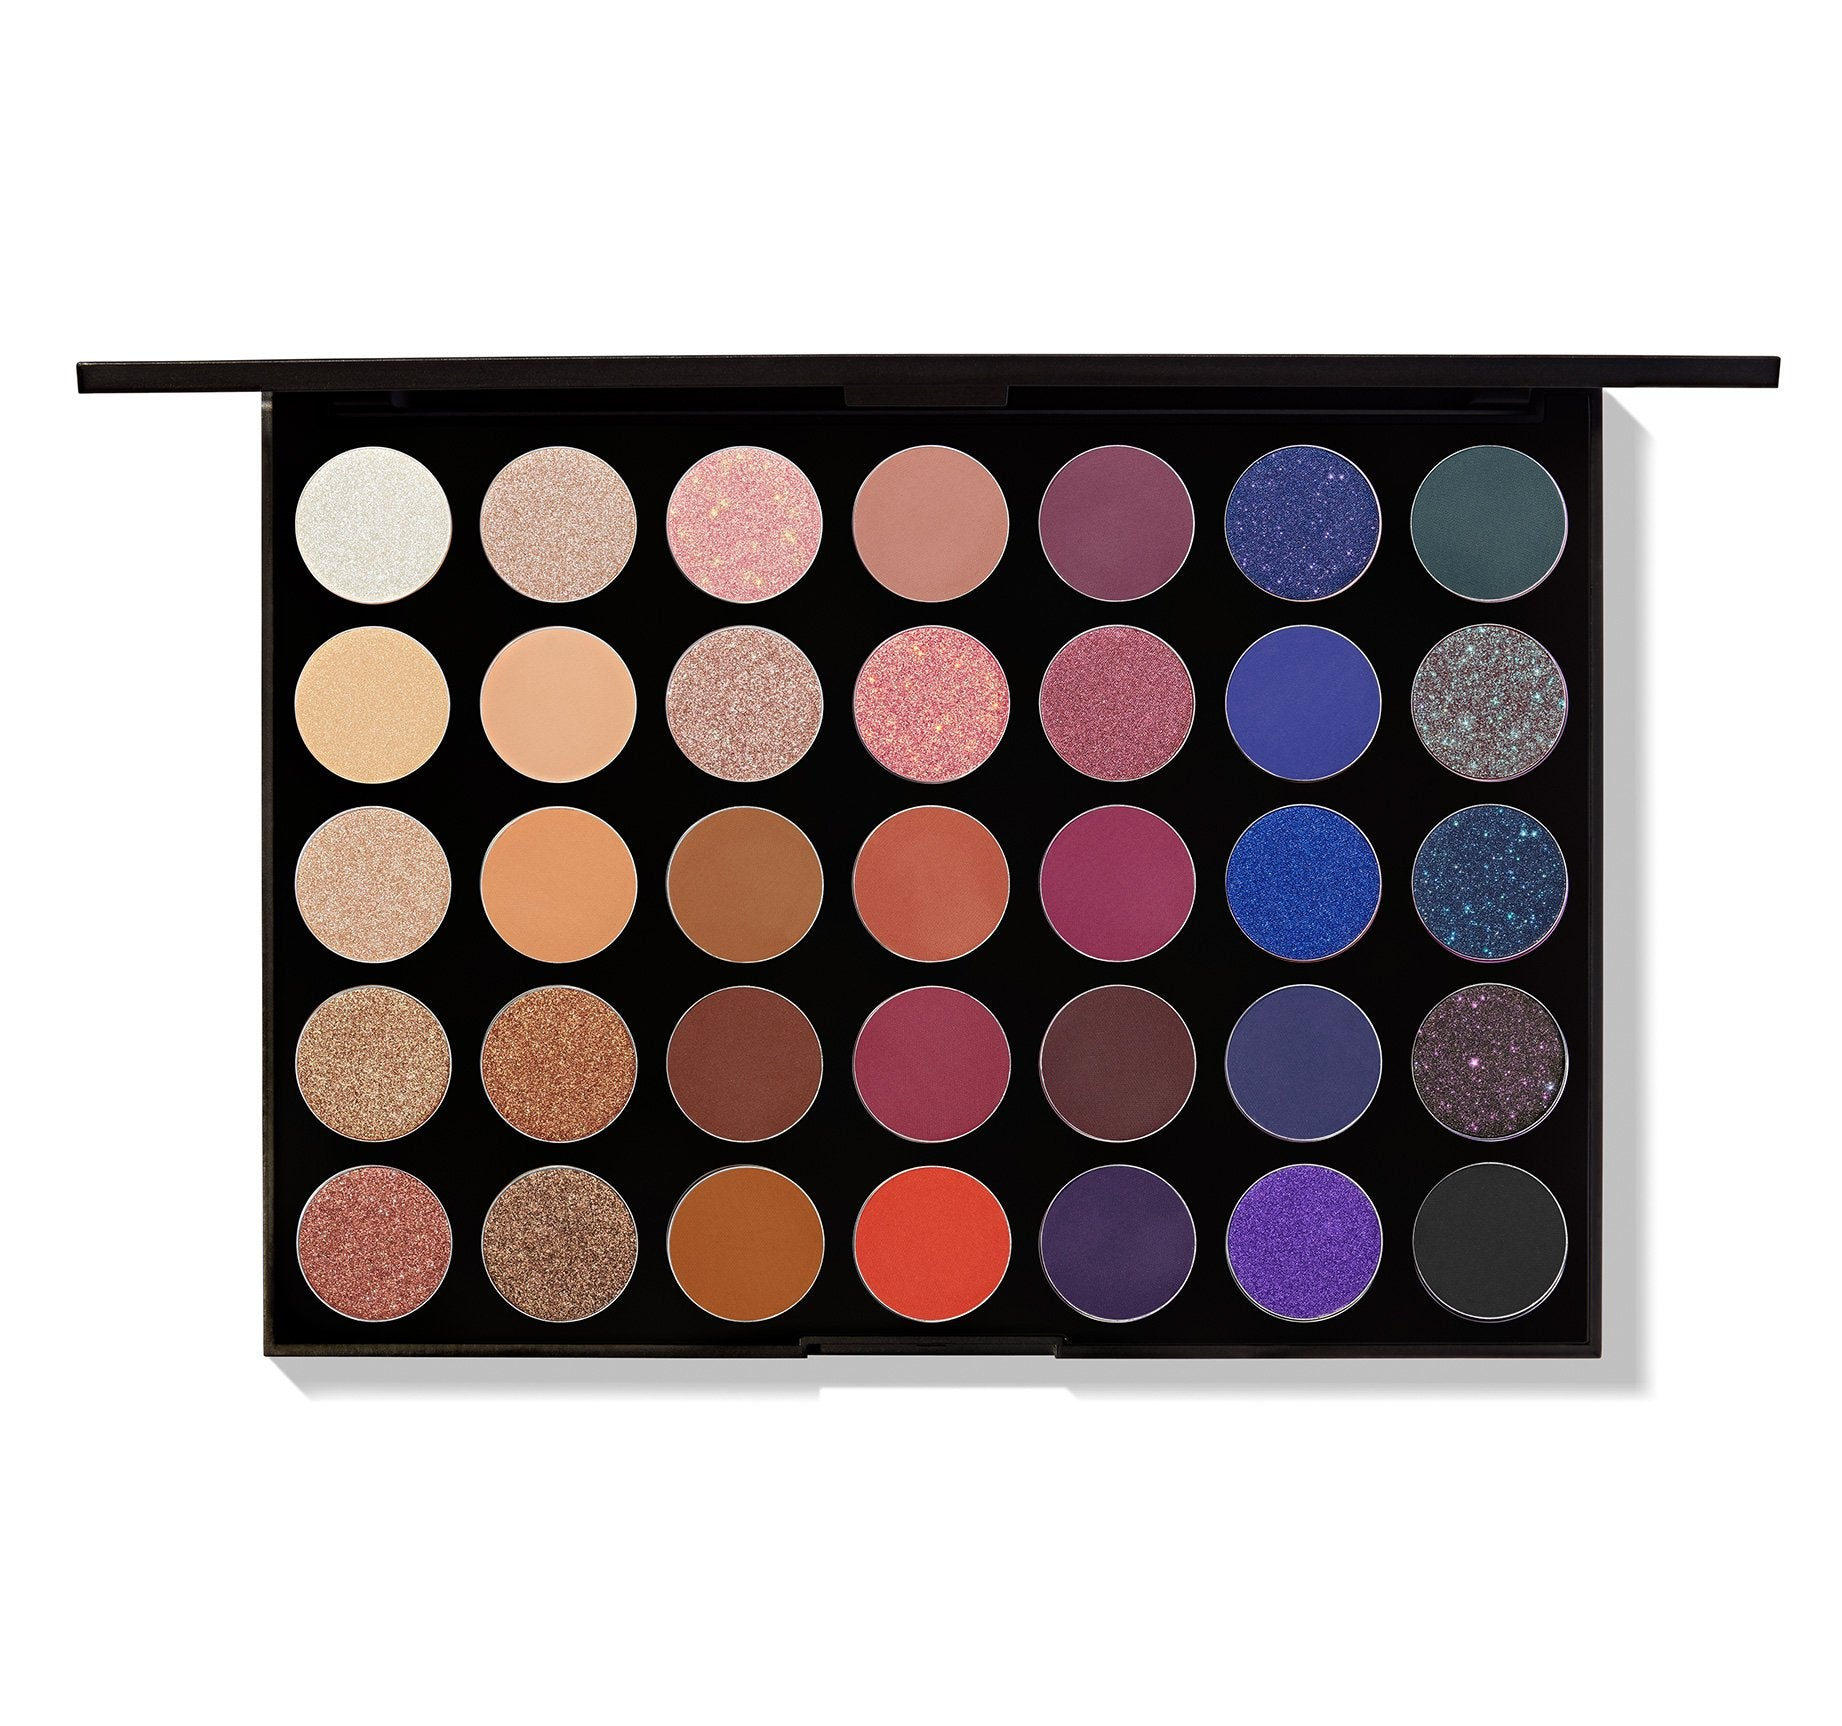 50% off Morphe Eyeshadow Palettes w/code 35HOTTIES @ Morphe